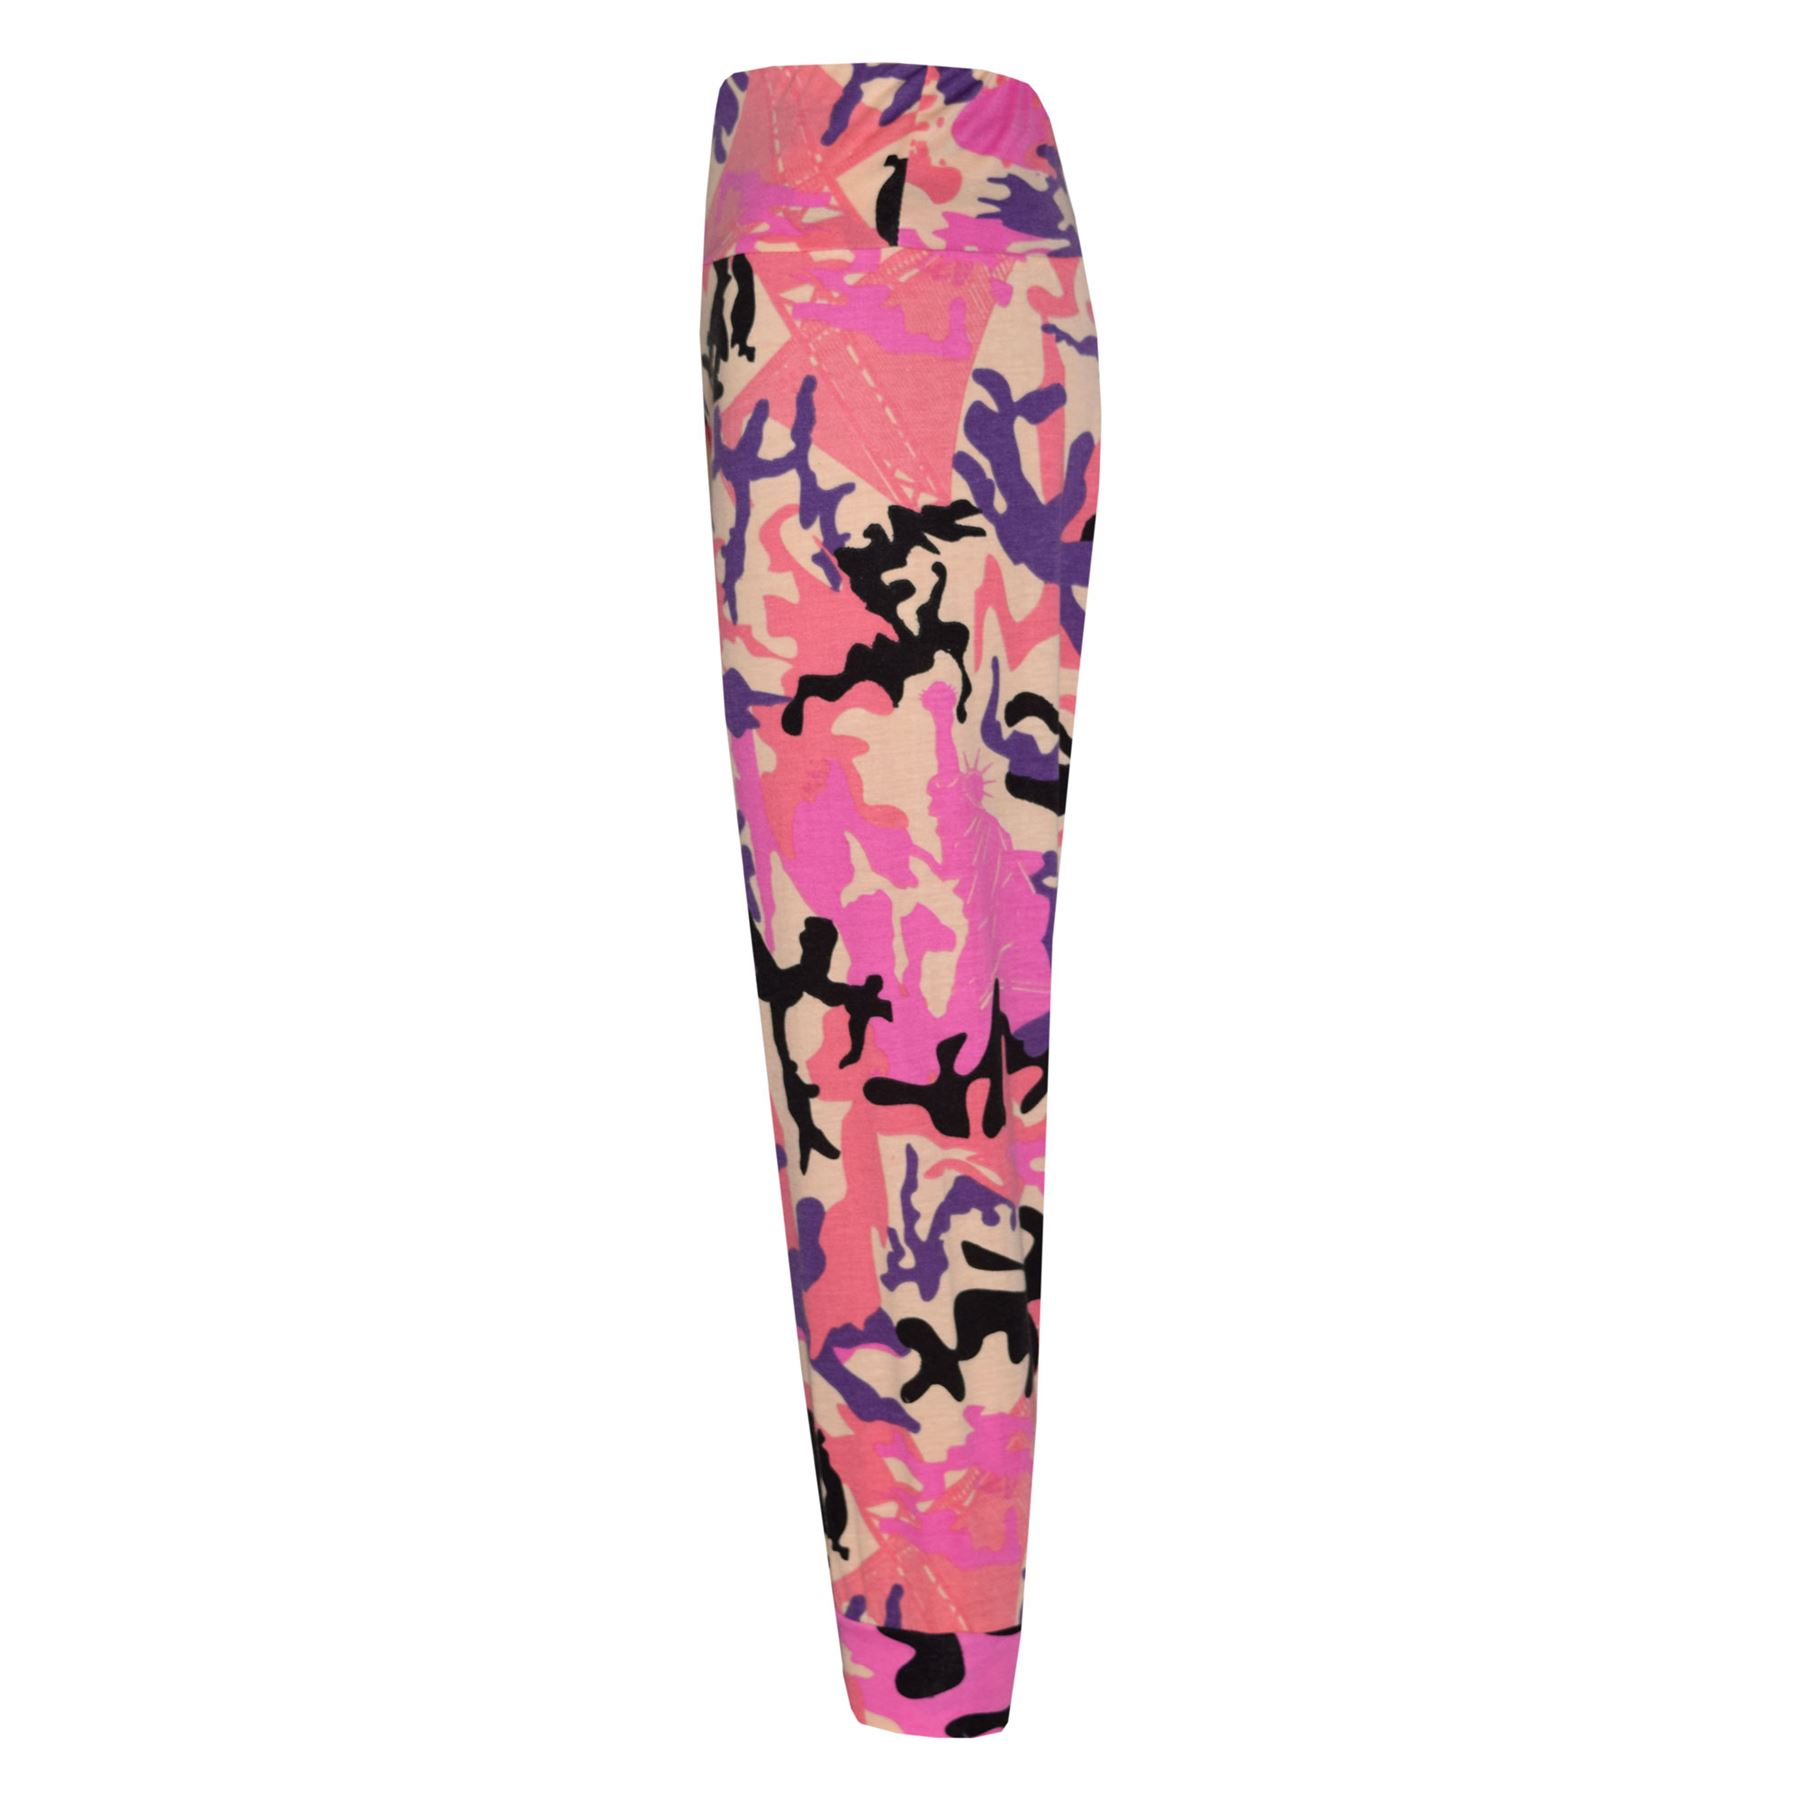 Kids-ali-baba-plain-color-modern-style-trousers-2-13-years thumbnail 8